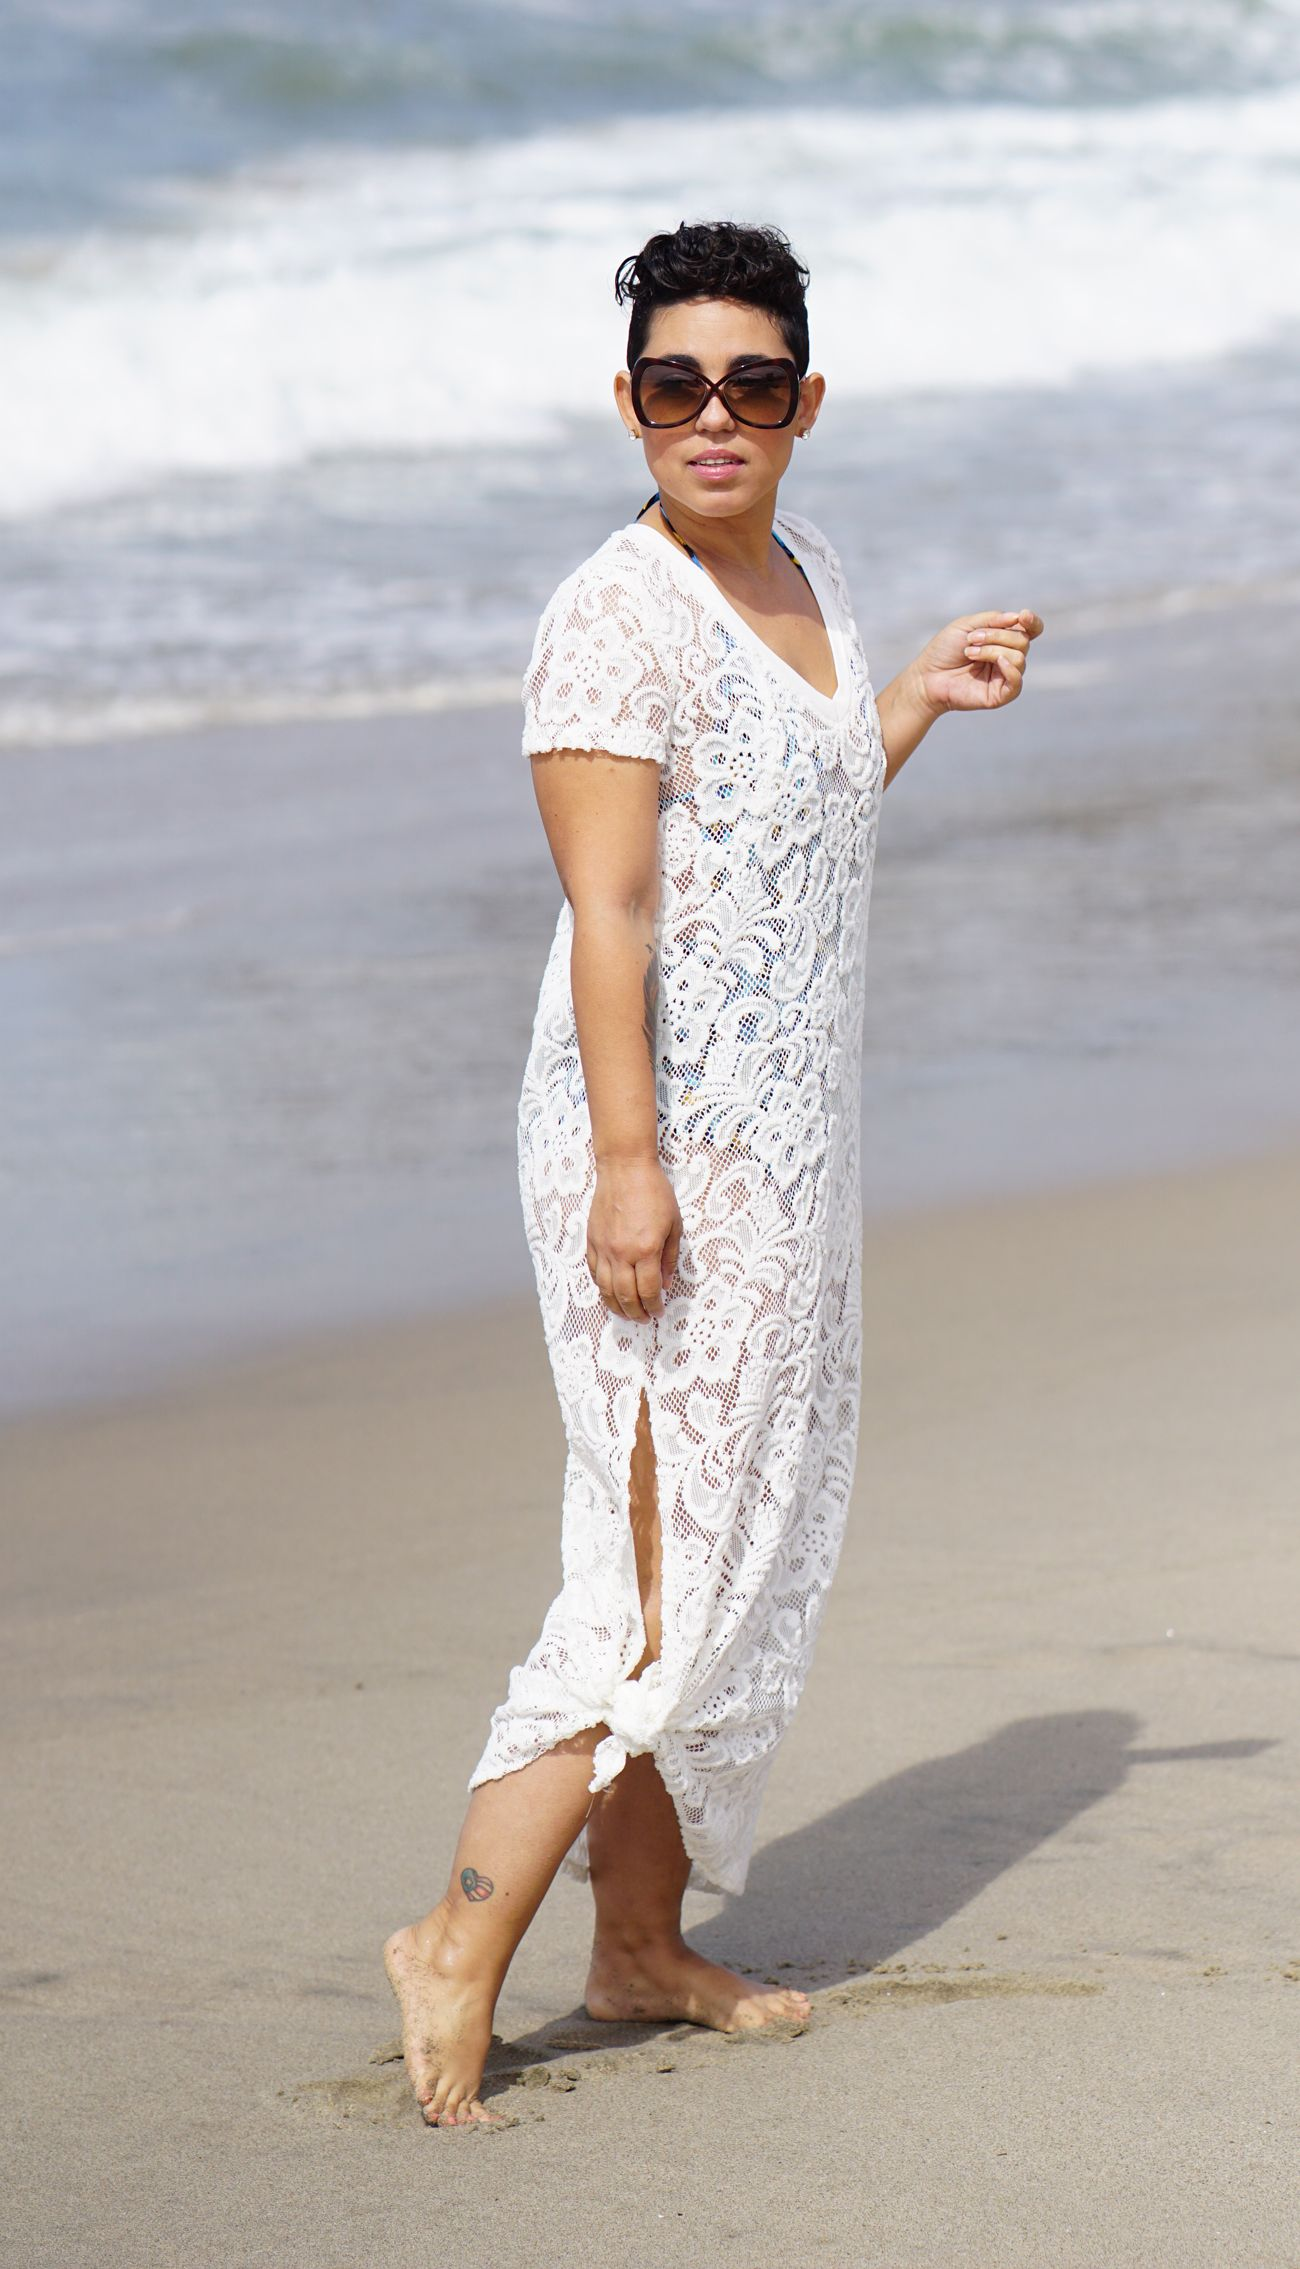 My Diy Beach Cover Up Mimi G Style Beach Outfit For Women Style Swimwear Pattern